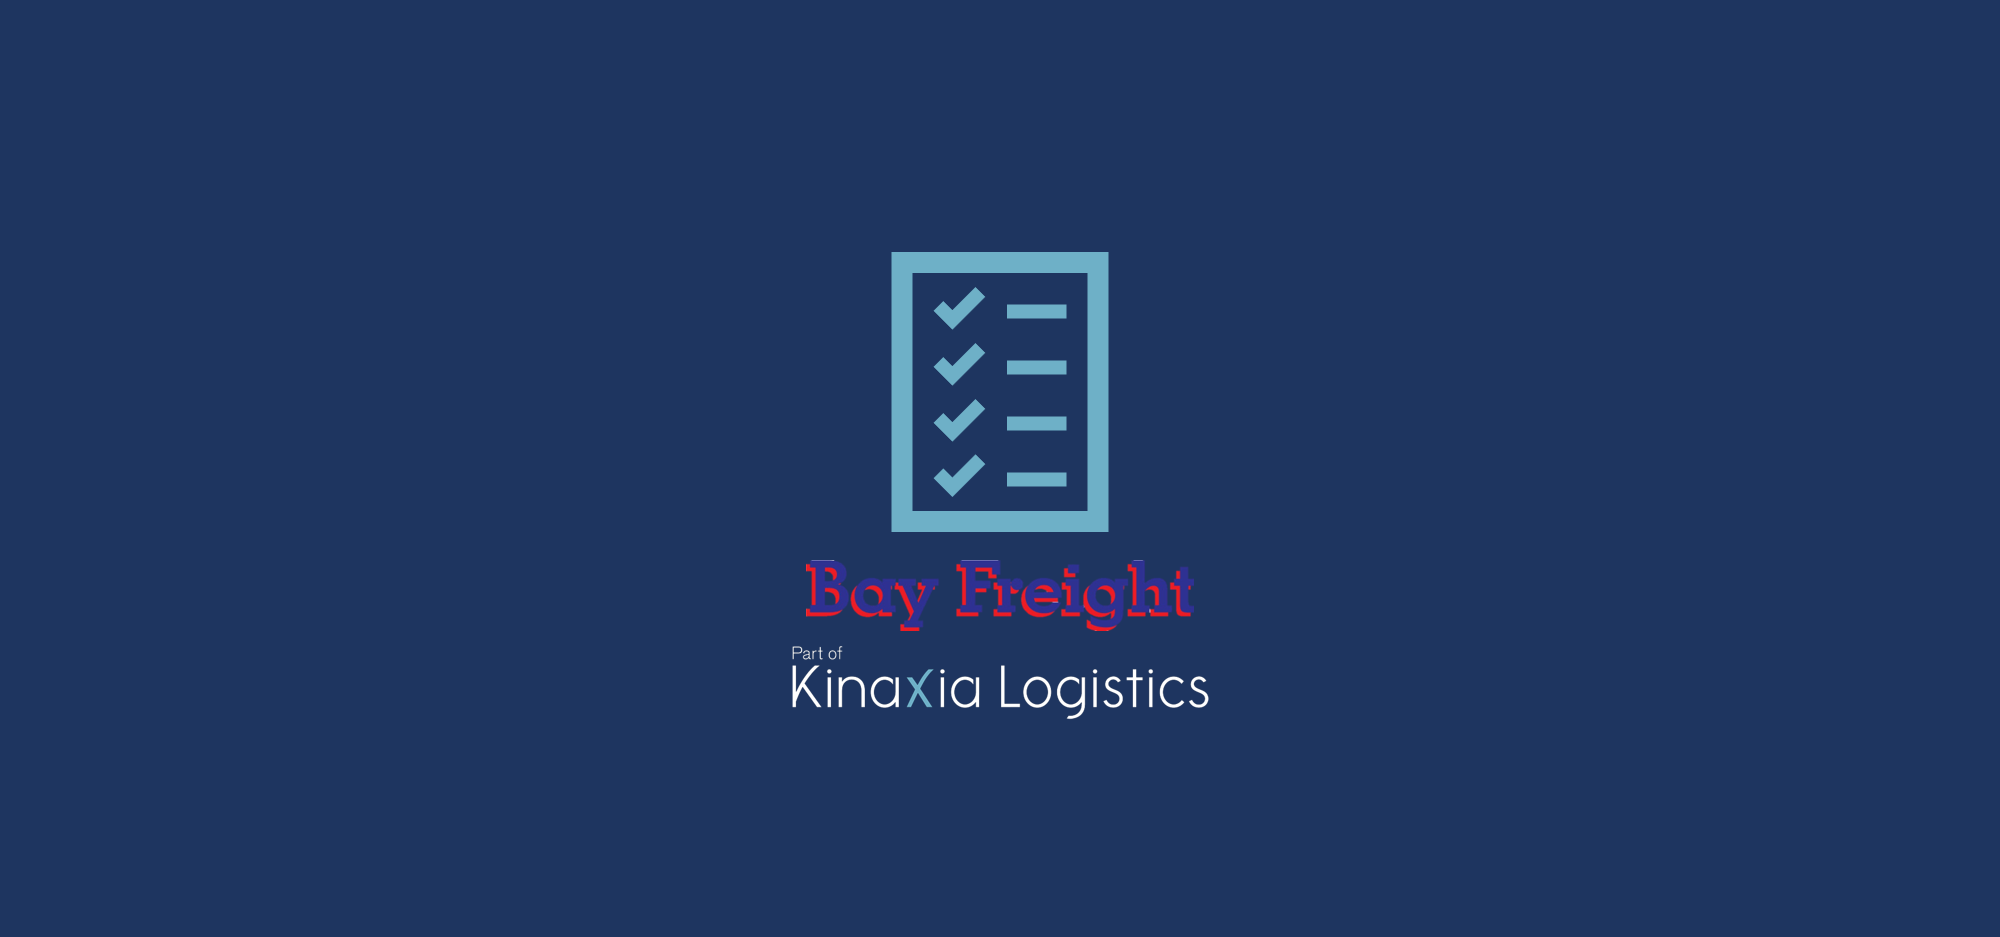 Bay Freight receive glowing feedback from Brother UK